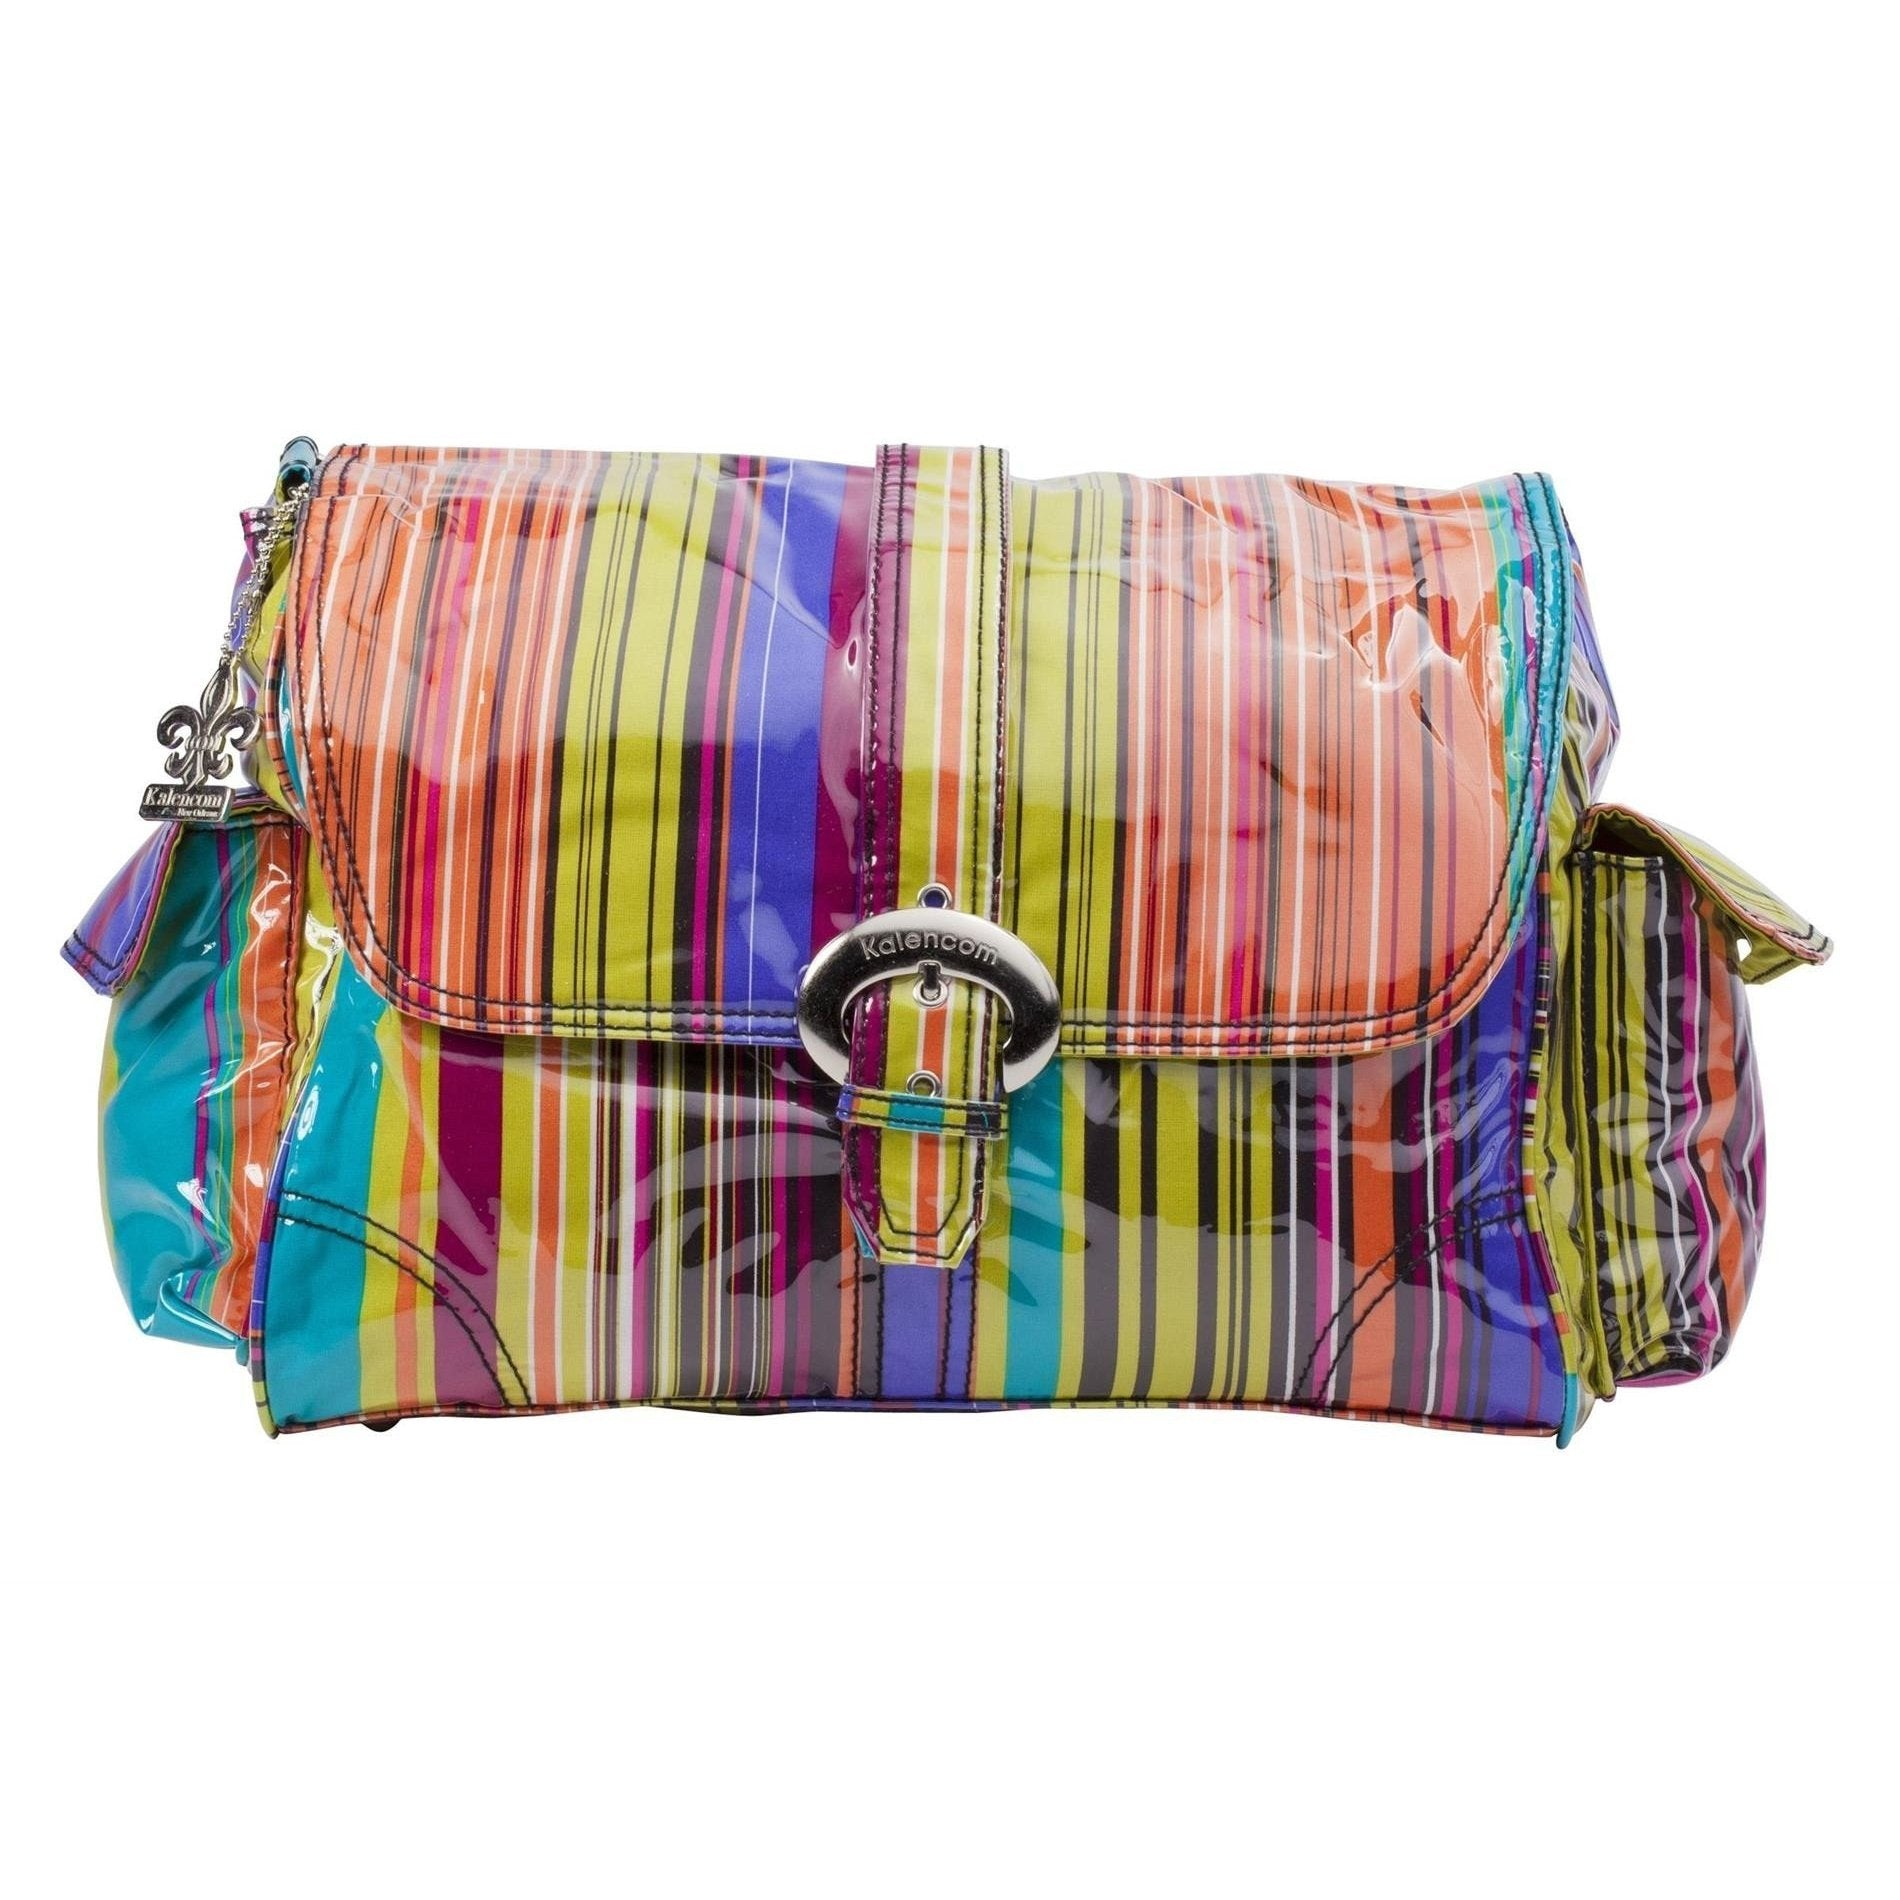 Spize Stripes Laminated Buckle Diaper Bag | Style 2960 - Kalencom-Diaper Bags-Default-Jack and Jill Boutique